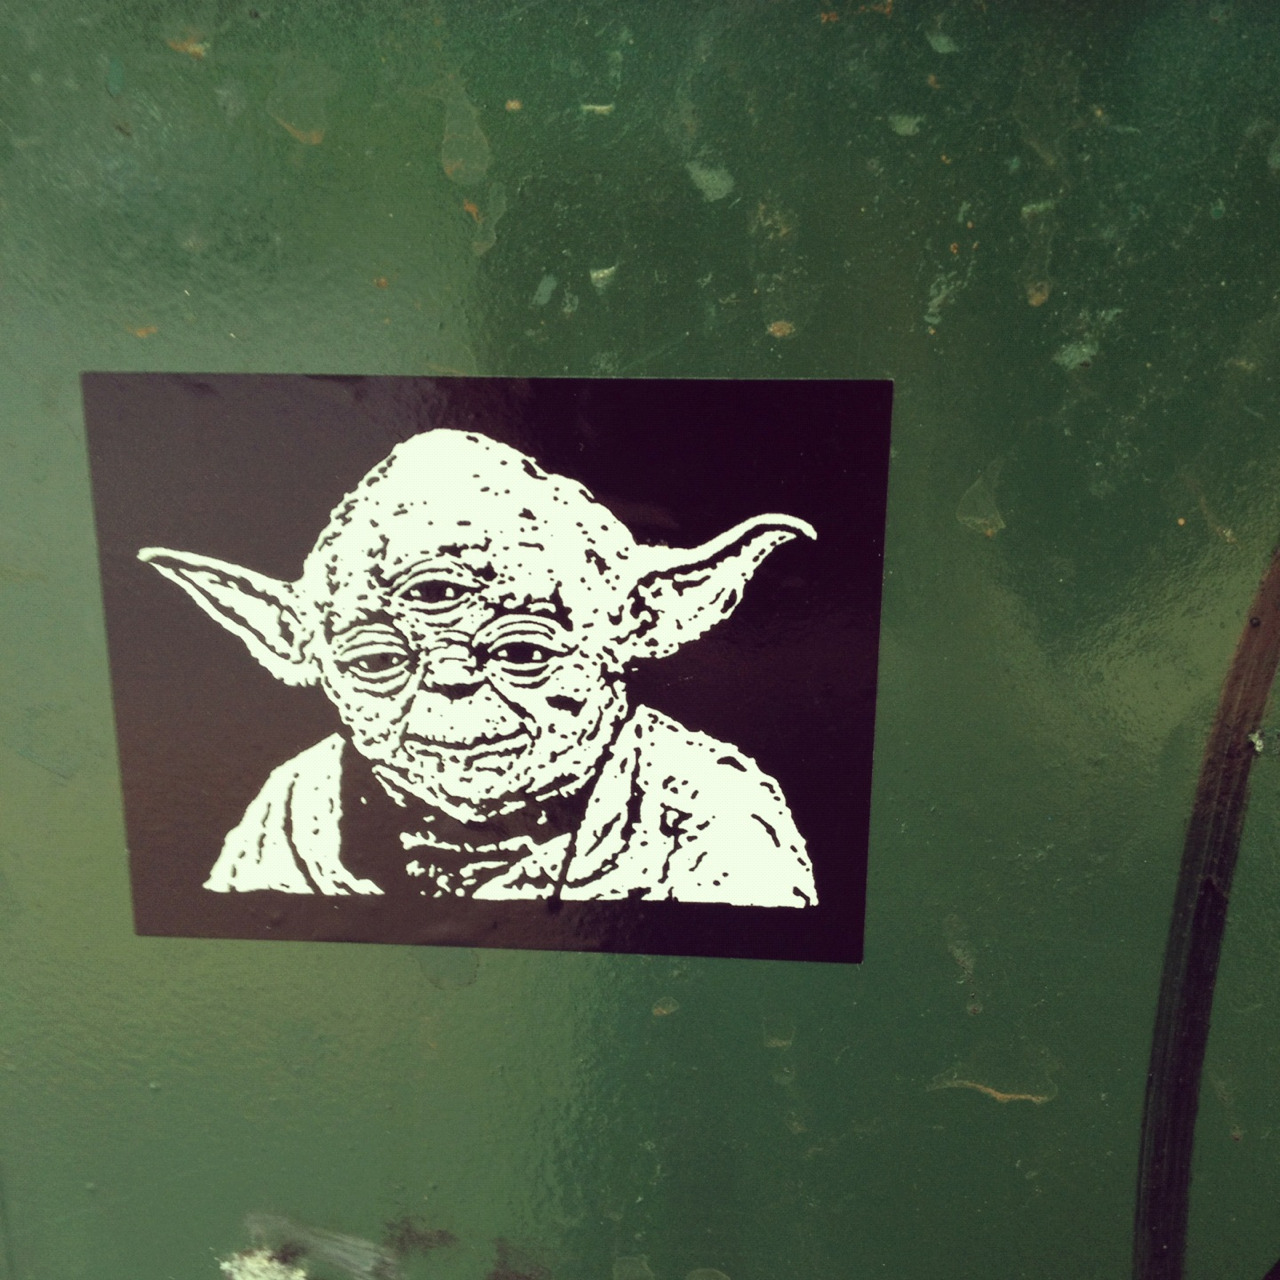 All seeing and wise, yoda is.